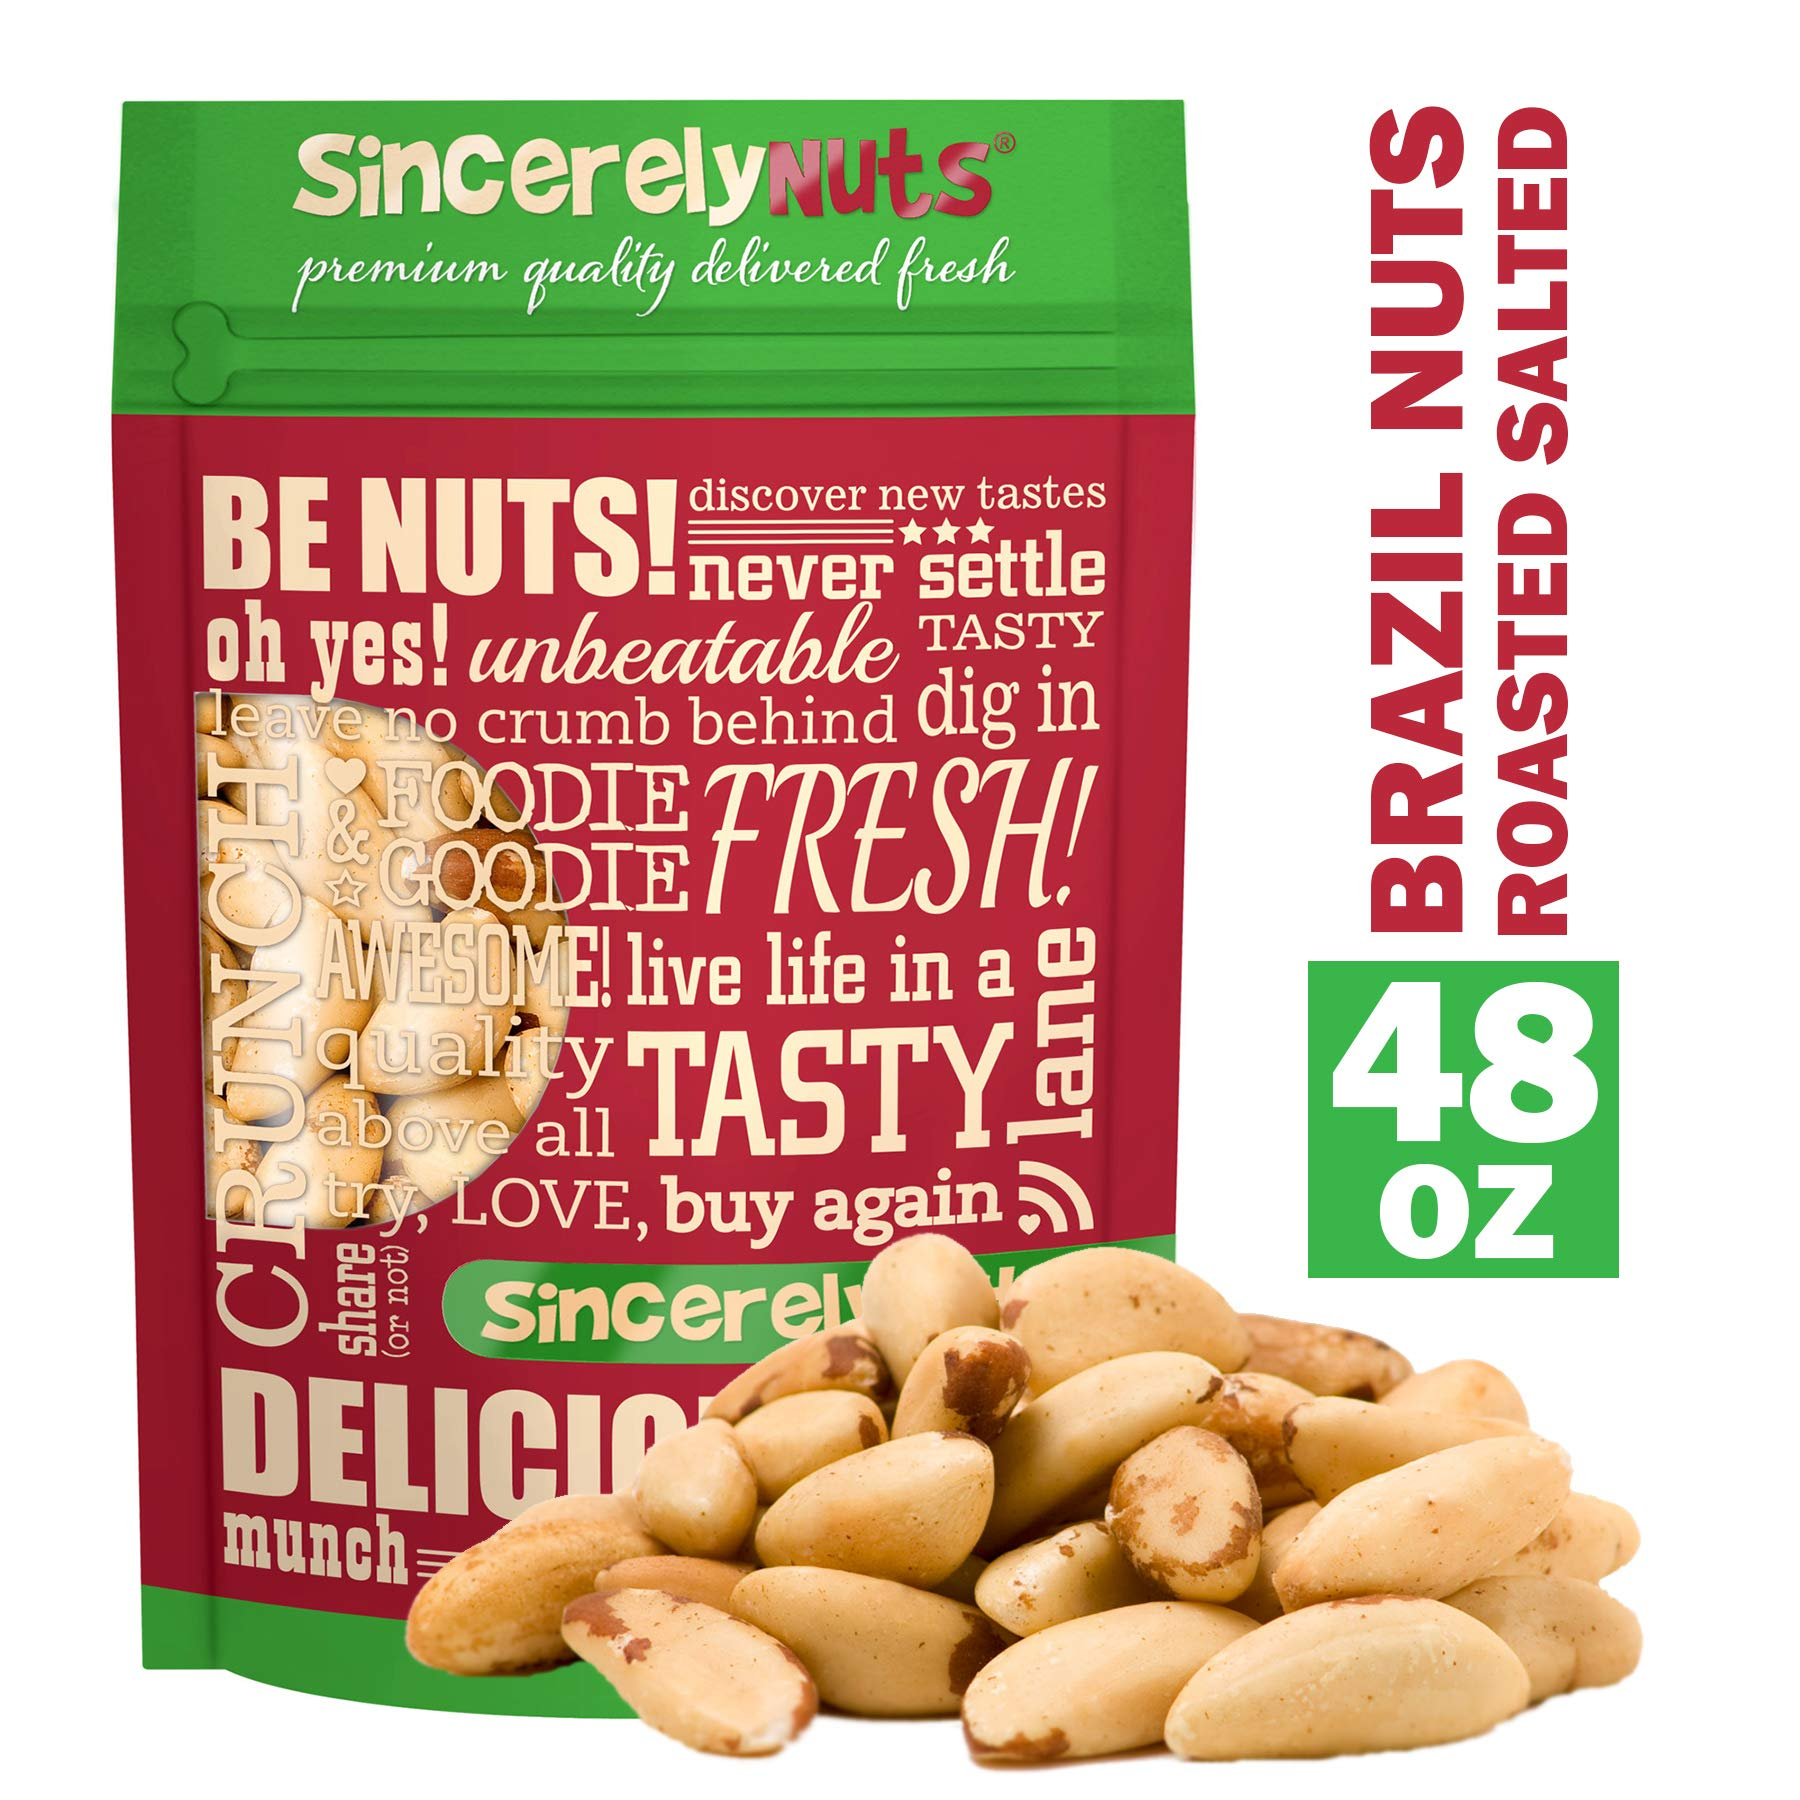 Sincerely Nuts Brazil Nuts Roasted and Salted (3 Lb. Bag) | Delicious Healthy Snack Food | Whole, Kosher, Vegan, Gluten Free | Gourmet Snack | Great Source of Protein, Vitamins & Minerals